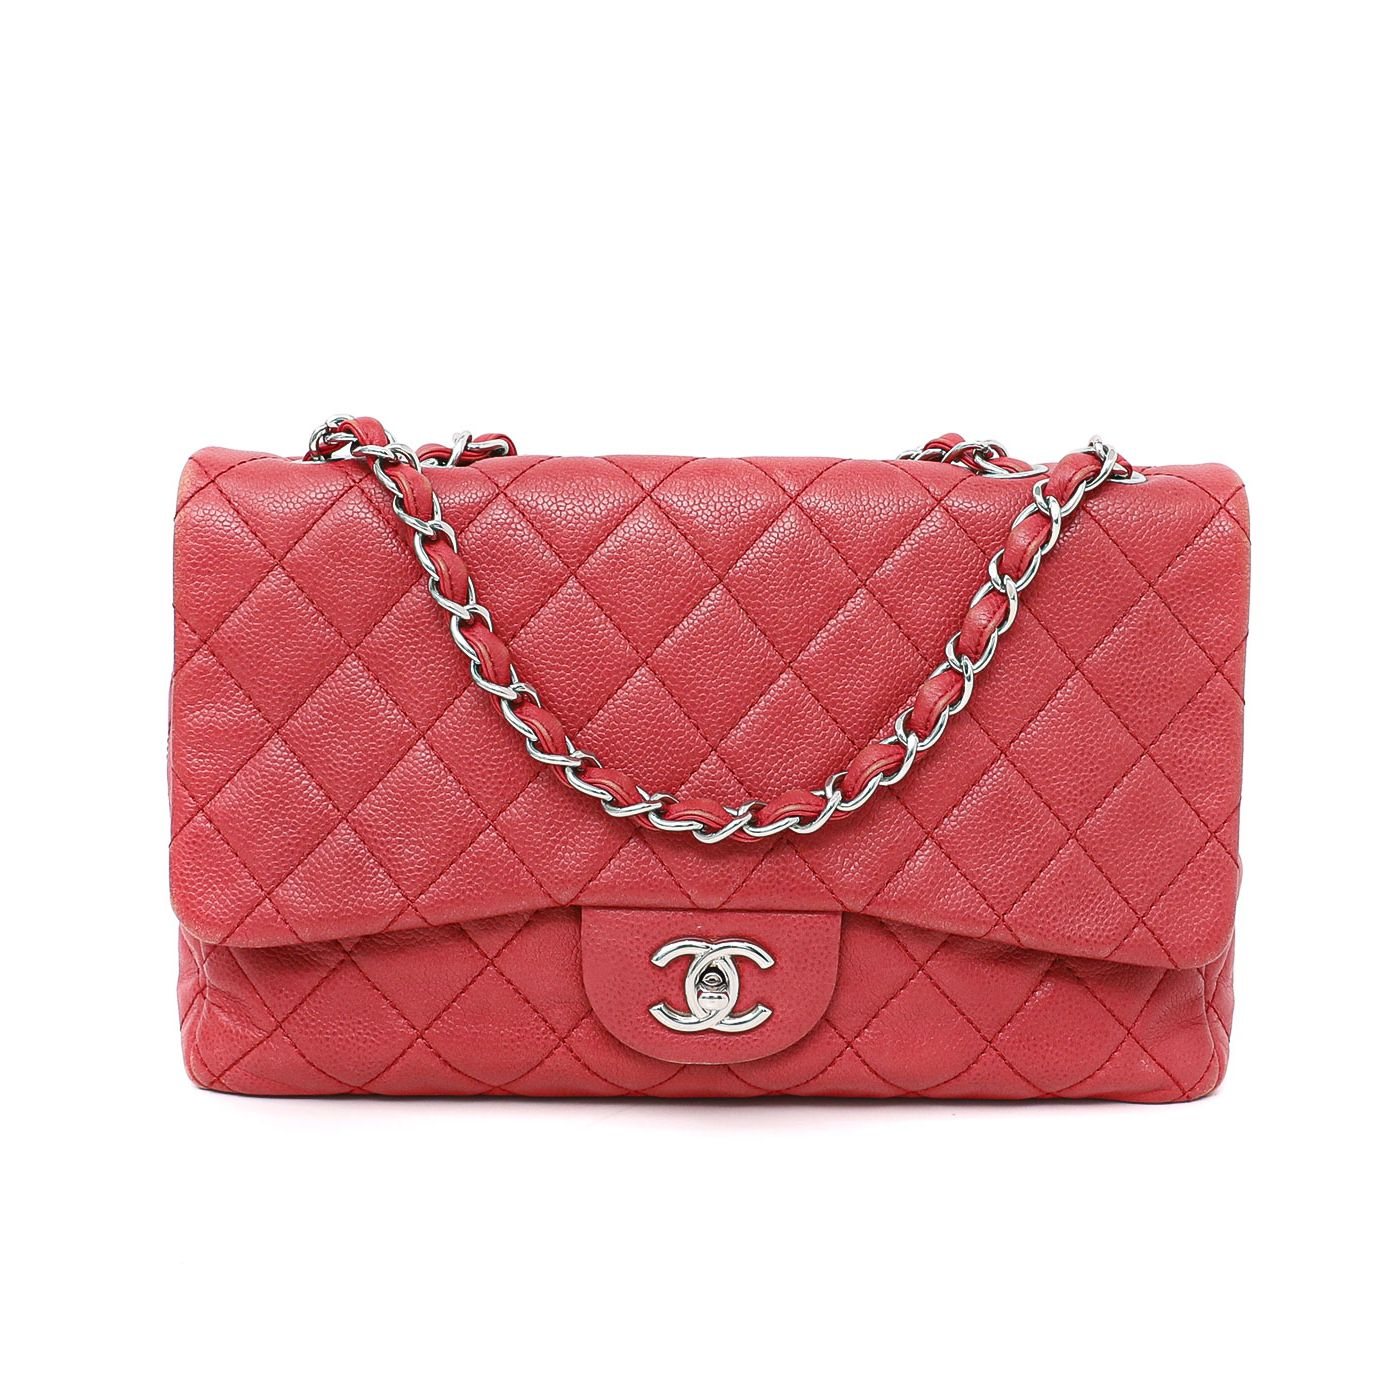 Chanel Dark Pink Caviar Single Flap Jumbo